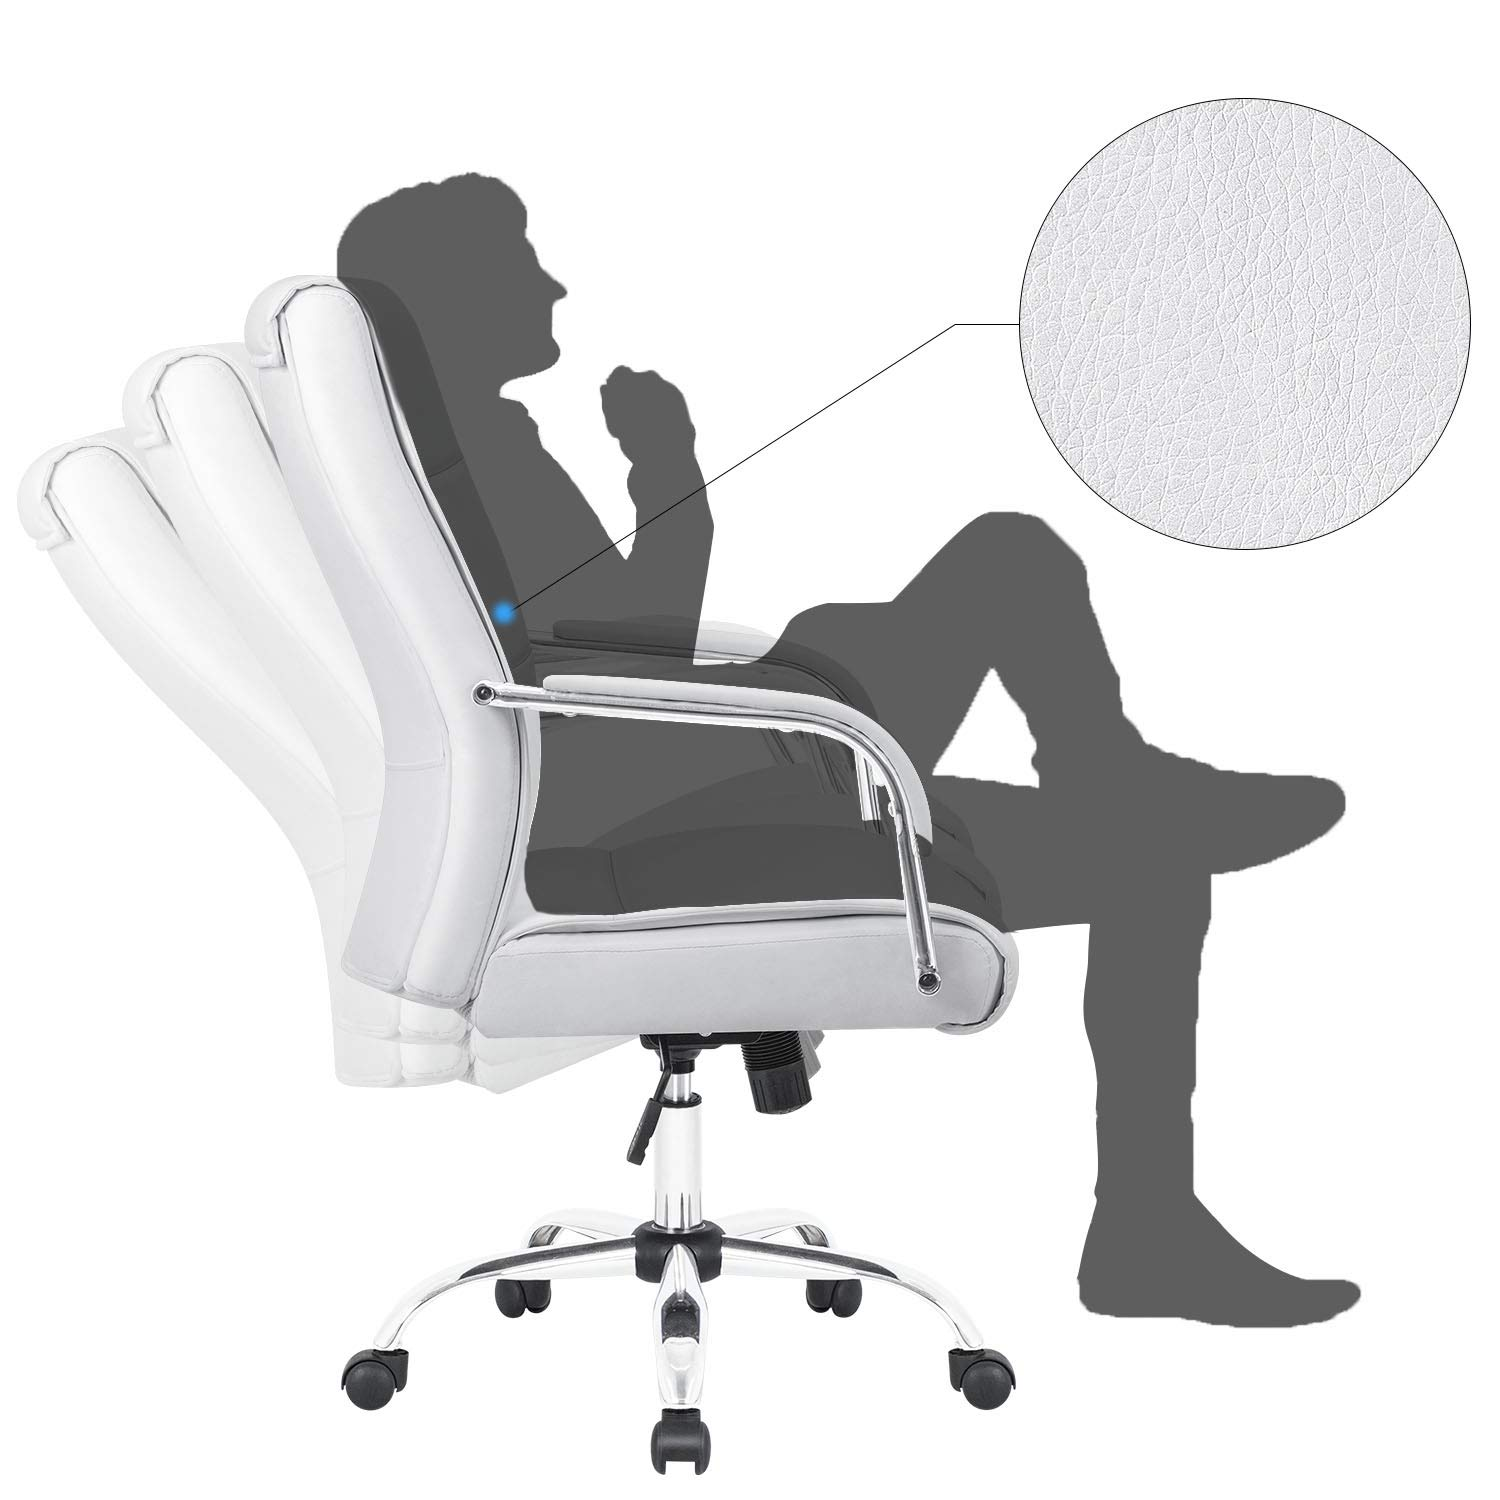 Furmax High Back Office Desk Chair Conference Leather Executive with Padded Armrests,Adjustable Ergonomic Swivel Task Chair with Lumbar Support(White) by Furmax (Image #4)